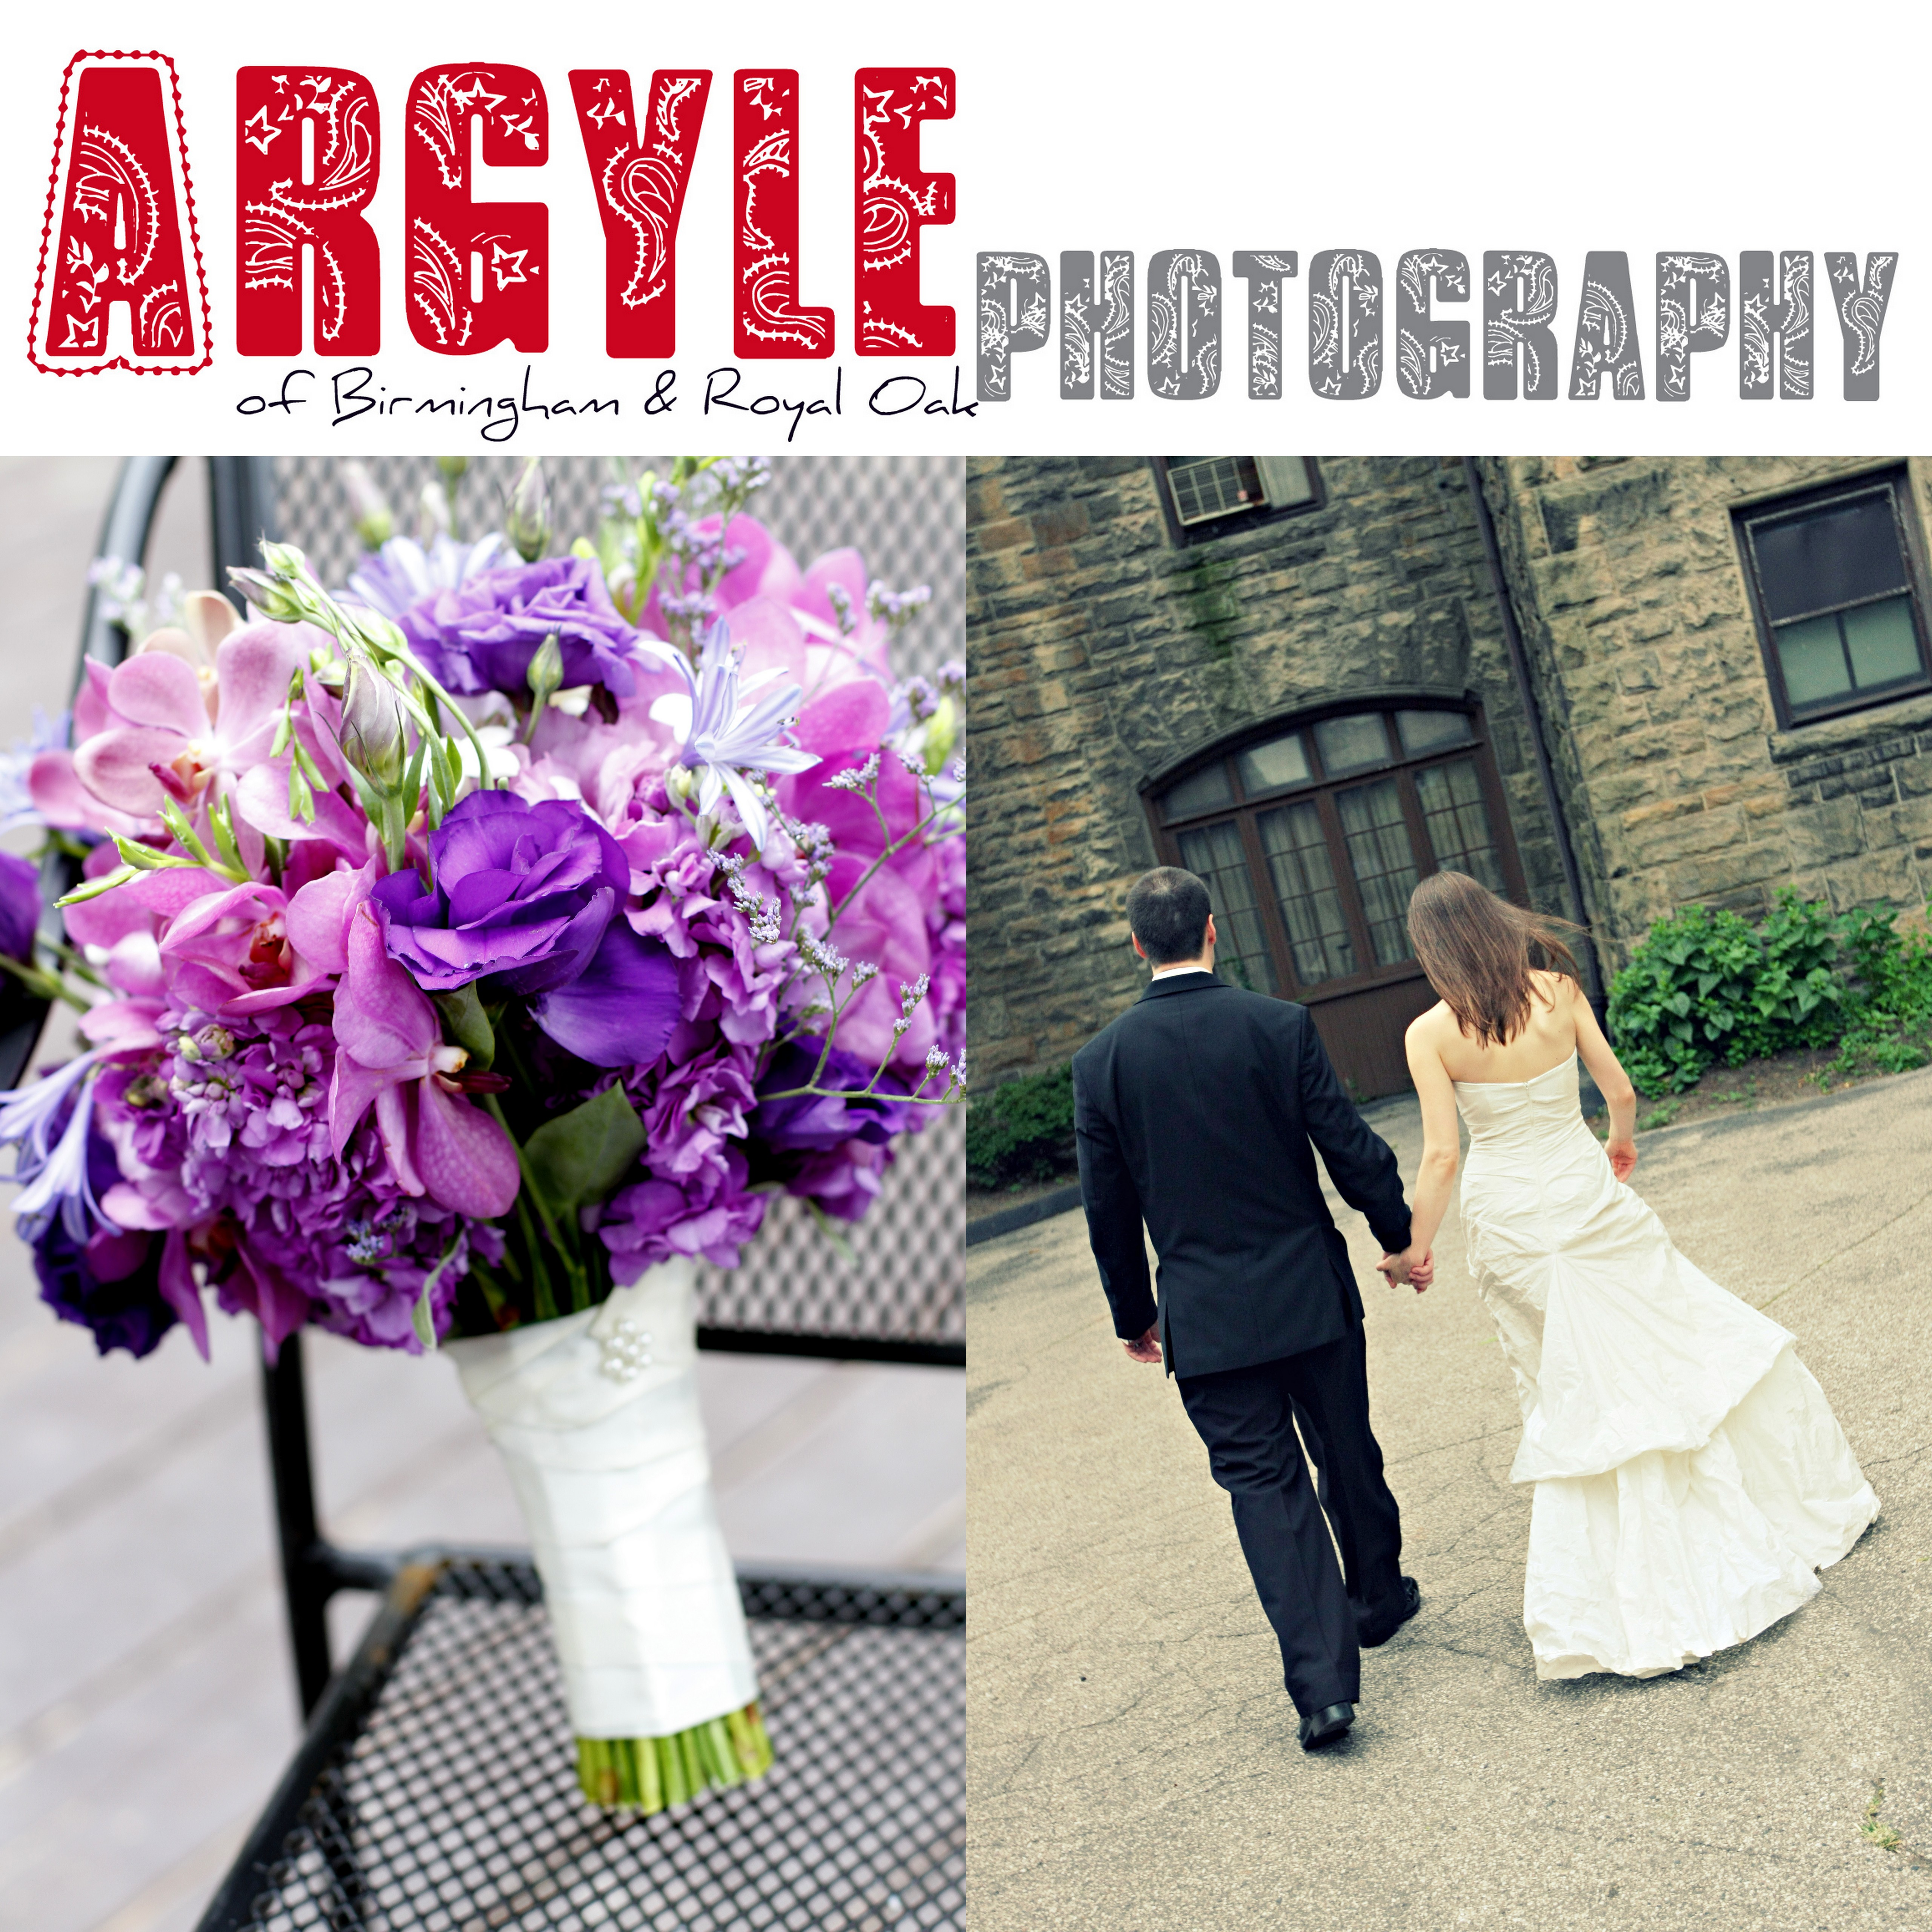 Argyle_photography_portfolio_20122.original